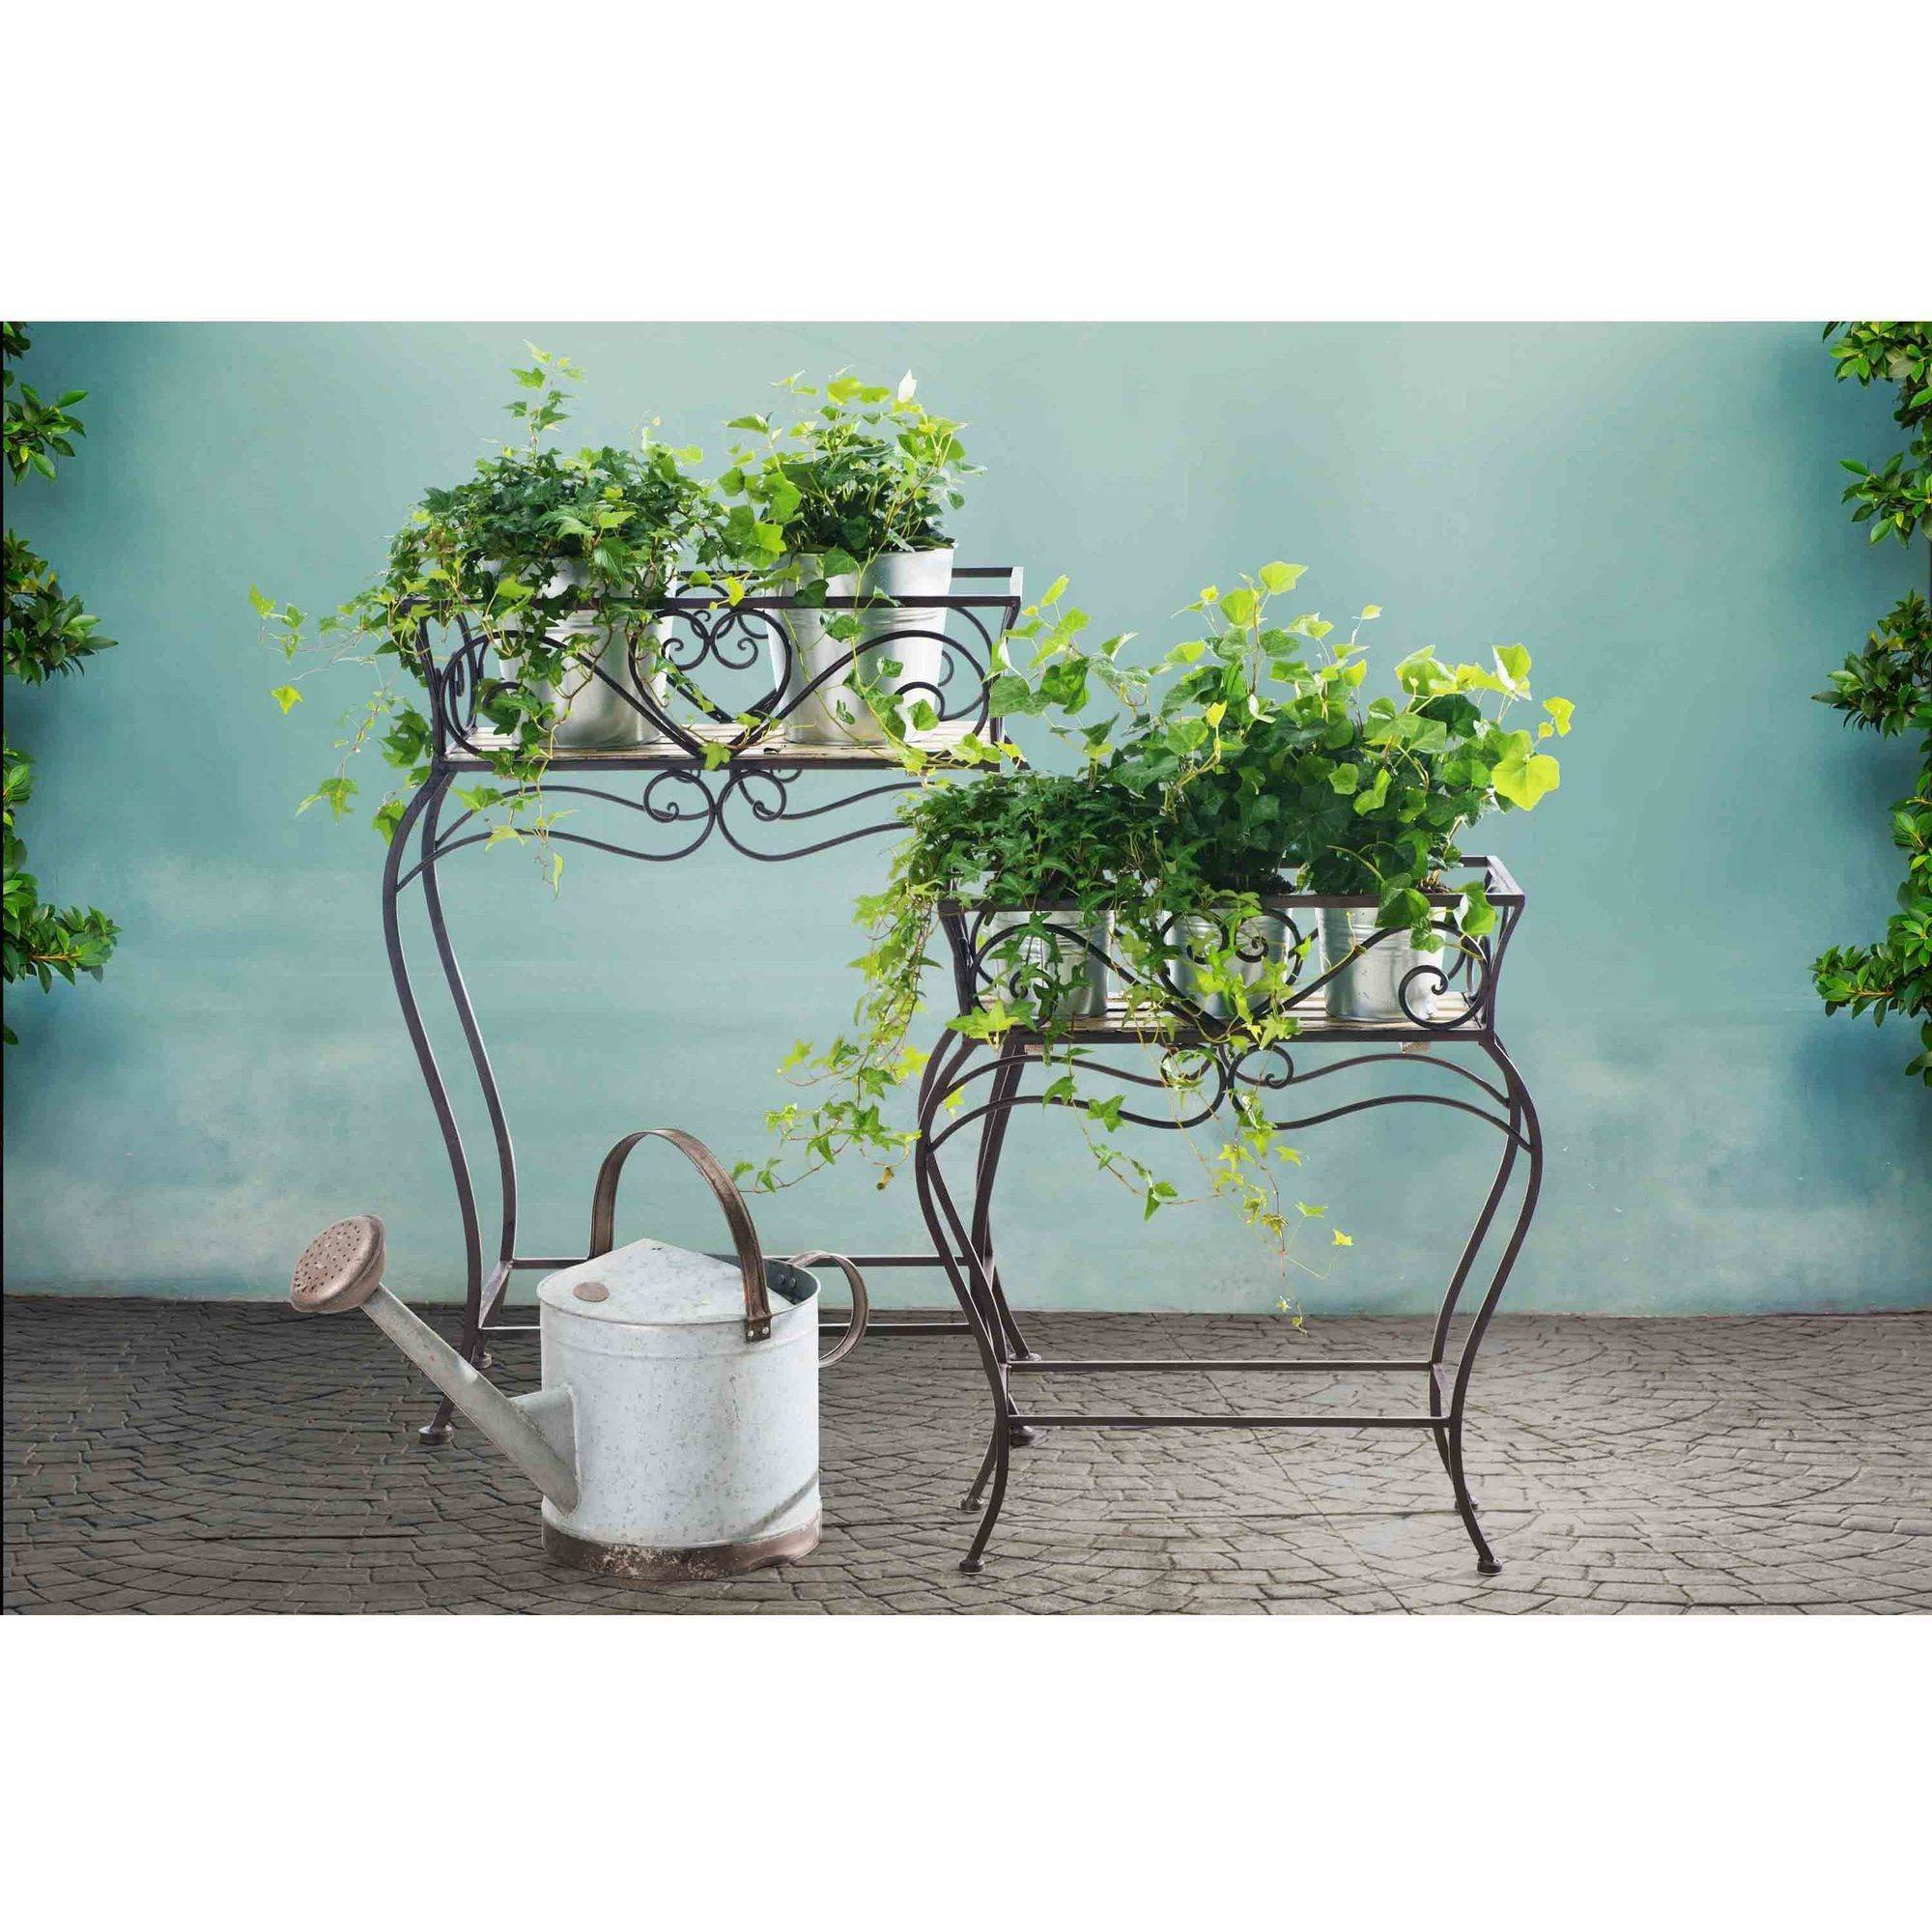 "Sunjoy 110302013 Wrought Iron and Wood Plant Stands, Set of 2, 31"" and 22"""